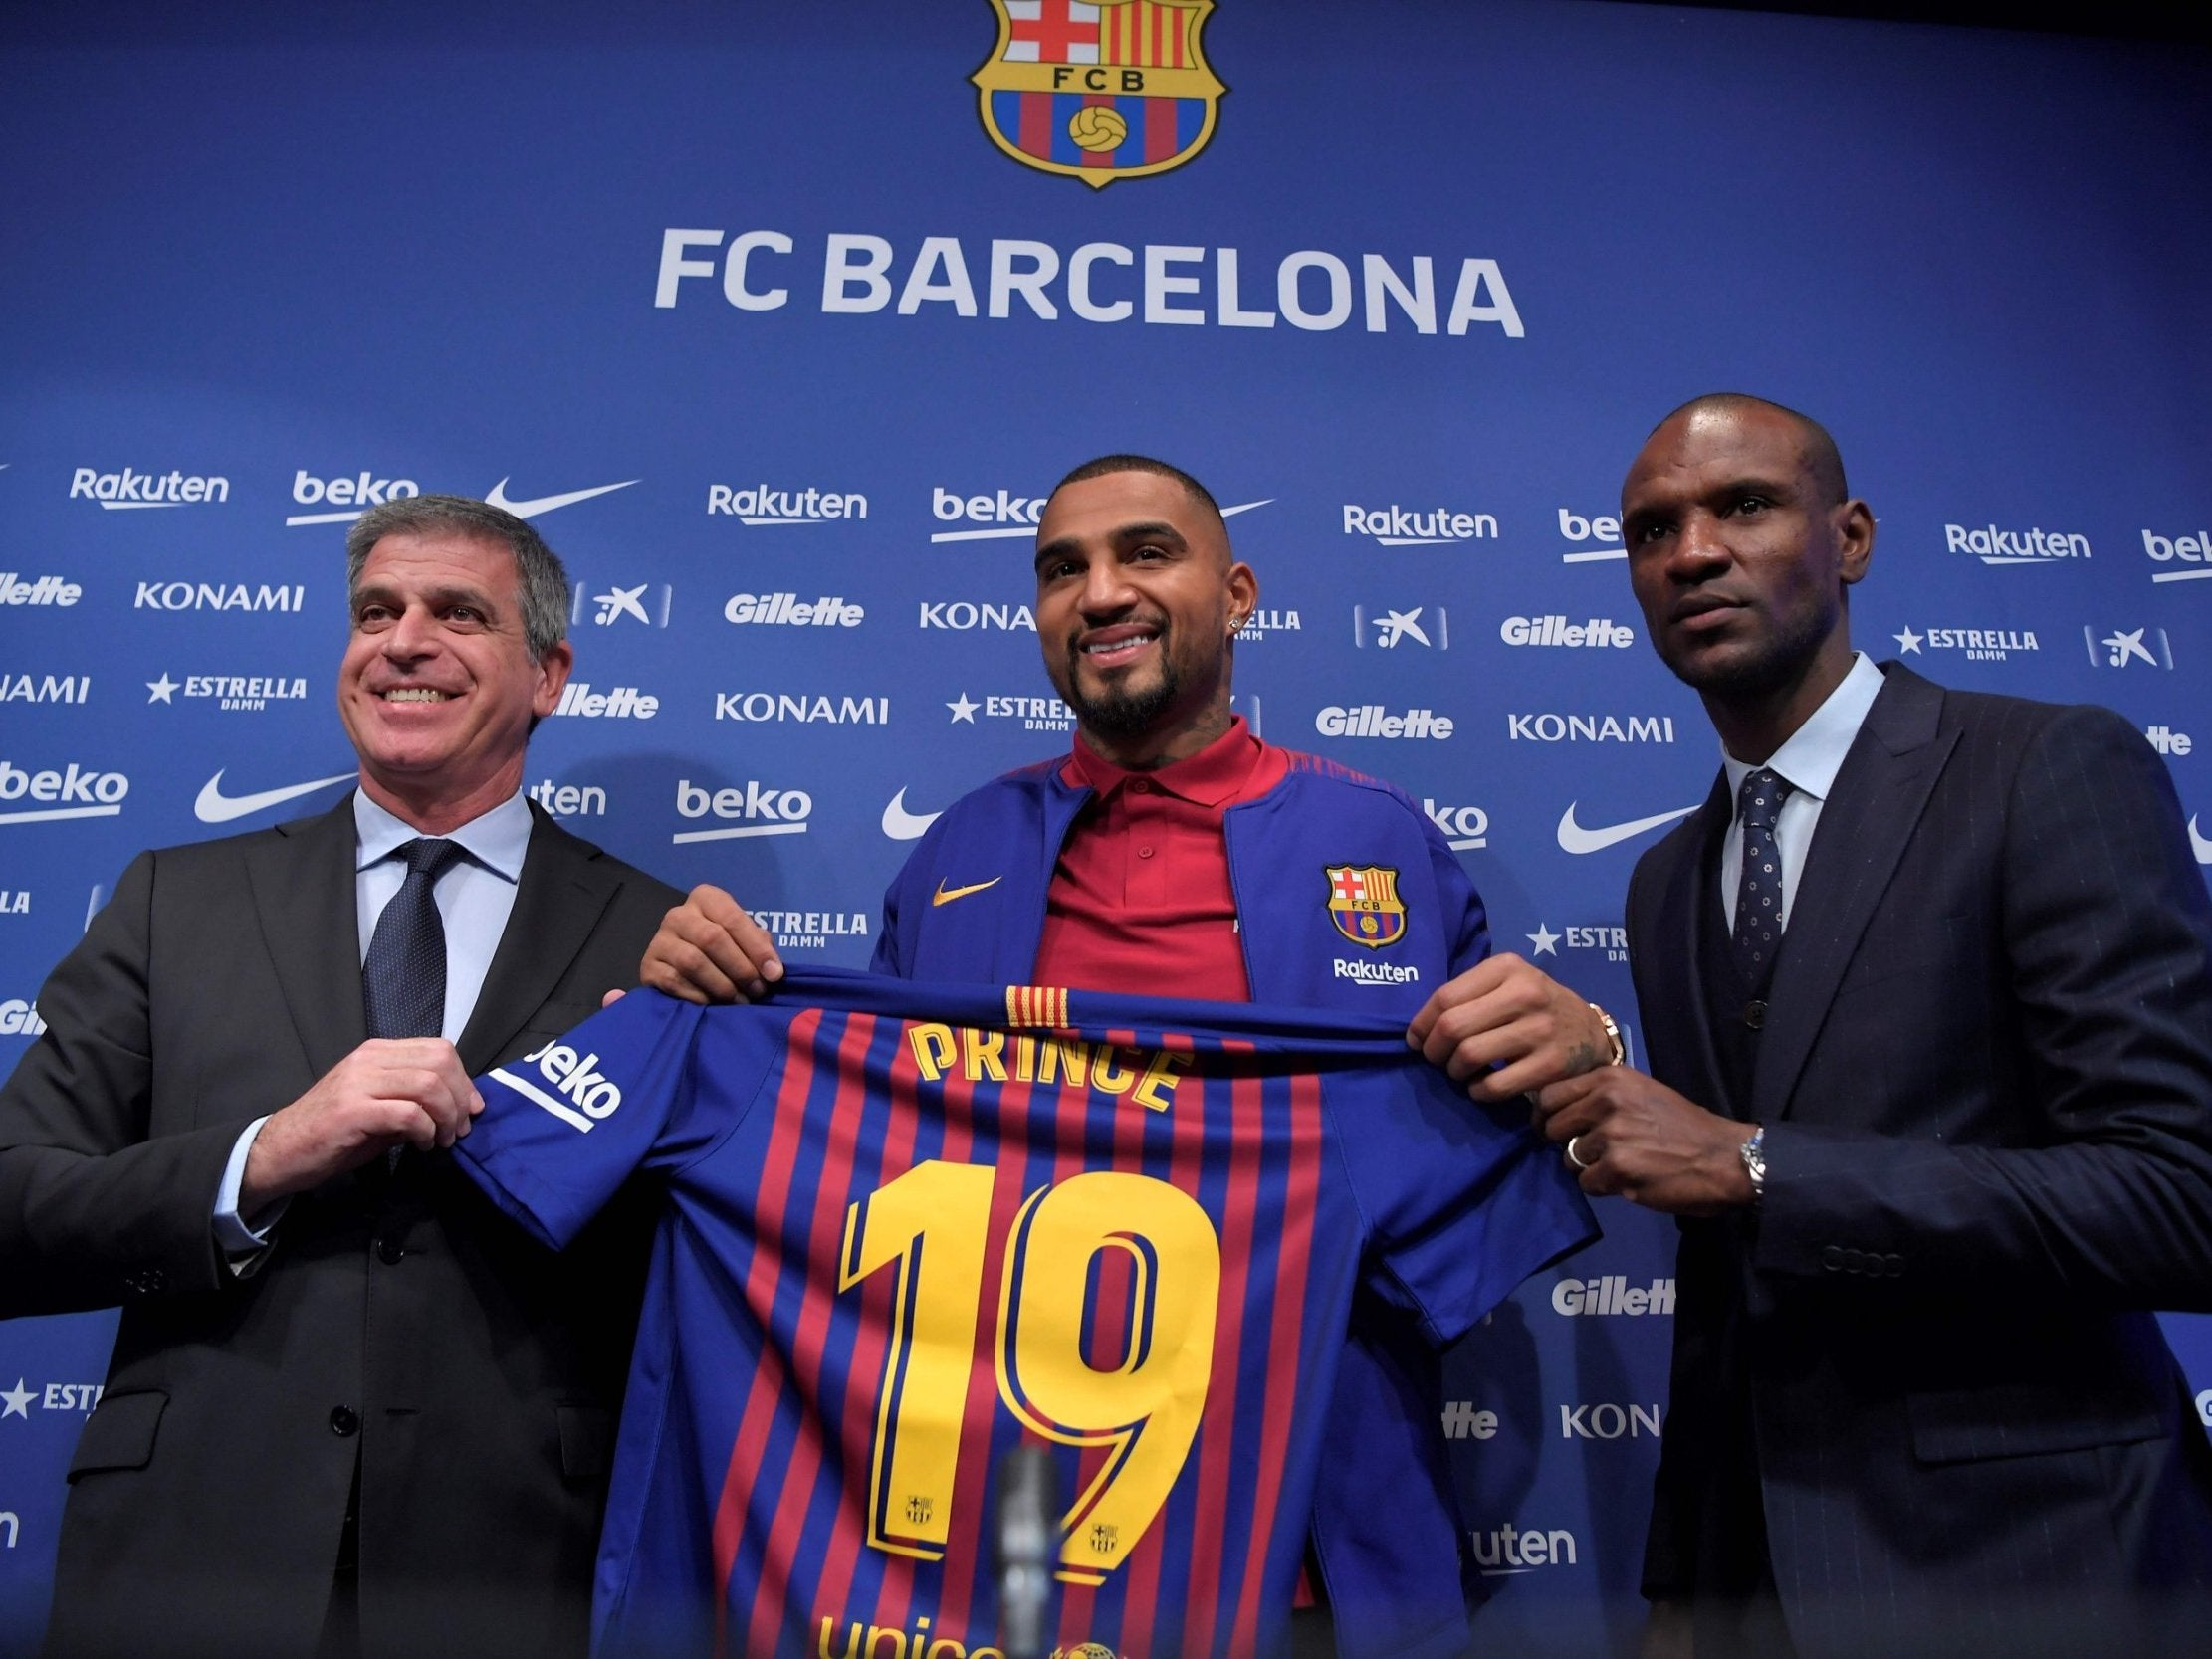 Barcelona transfer news: Kevin-Prince Boateng vows to earn permanent move to the Nou Camp